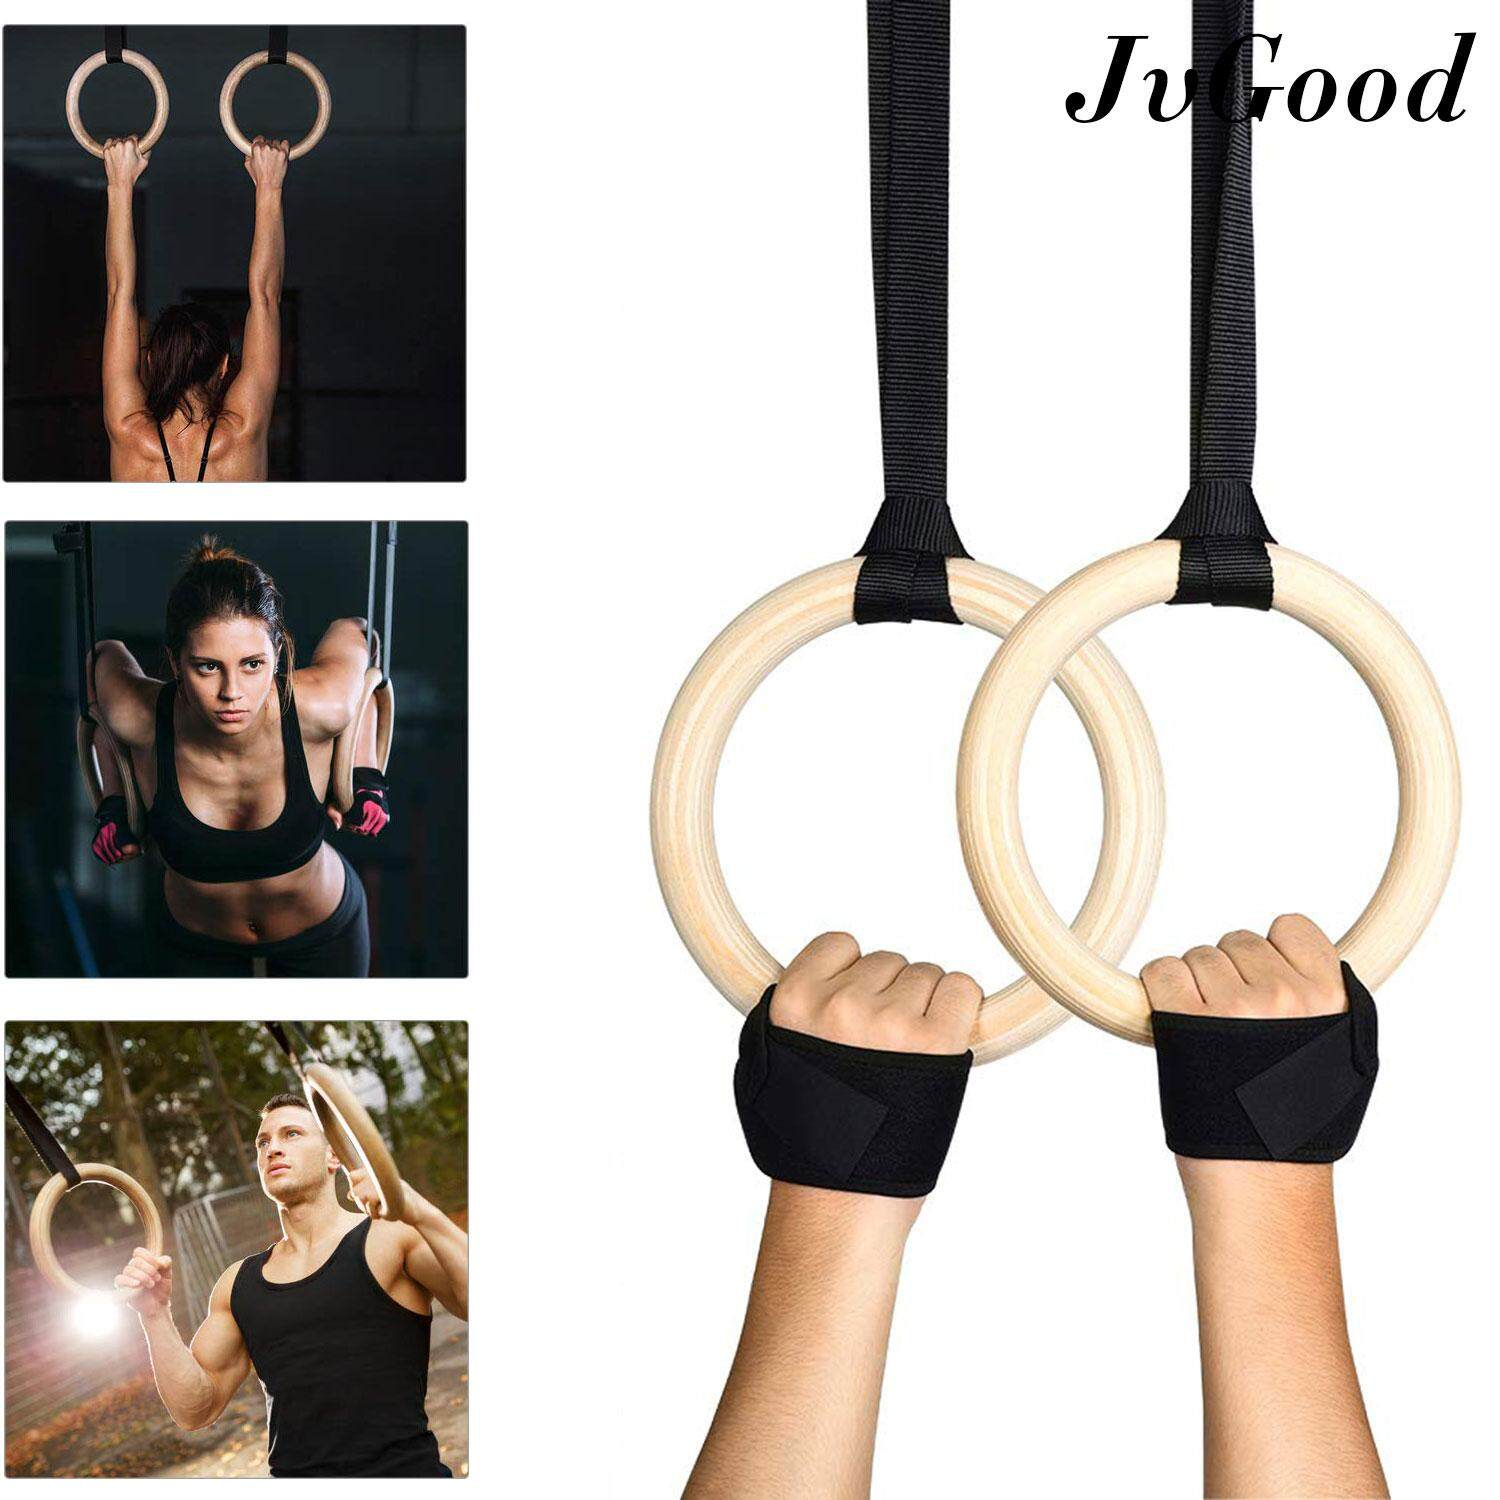 Jvgood ยิมนาสติกแหวนโ Wood Gymnastic Rings Olympic Rings 1pair Premium Heavy Duty Cross Training Wood Gymnastics Fitness Exercise Rings For Your Home Gym Exercise Rings Workout, Crossfit And Strength Training Ring Pull Up, Dips, Muscle Up, Ring Row By Jvgood.